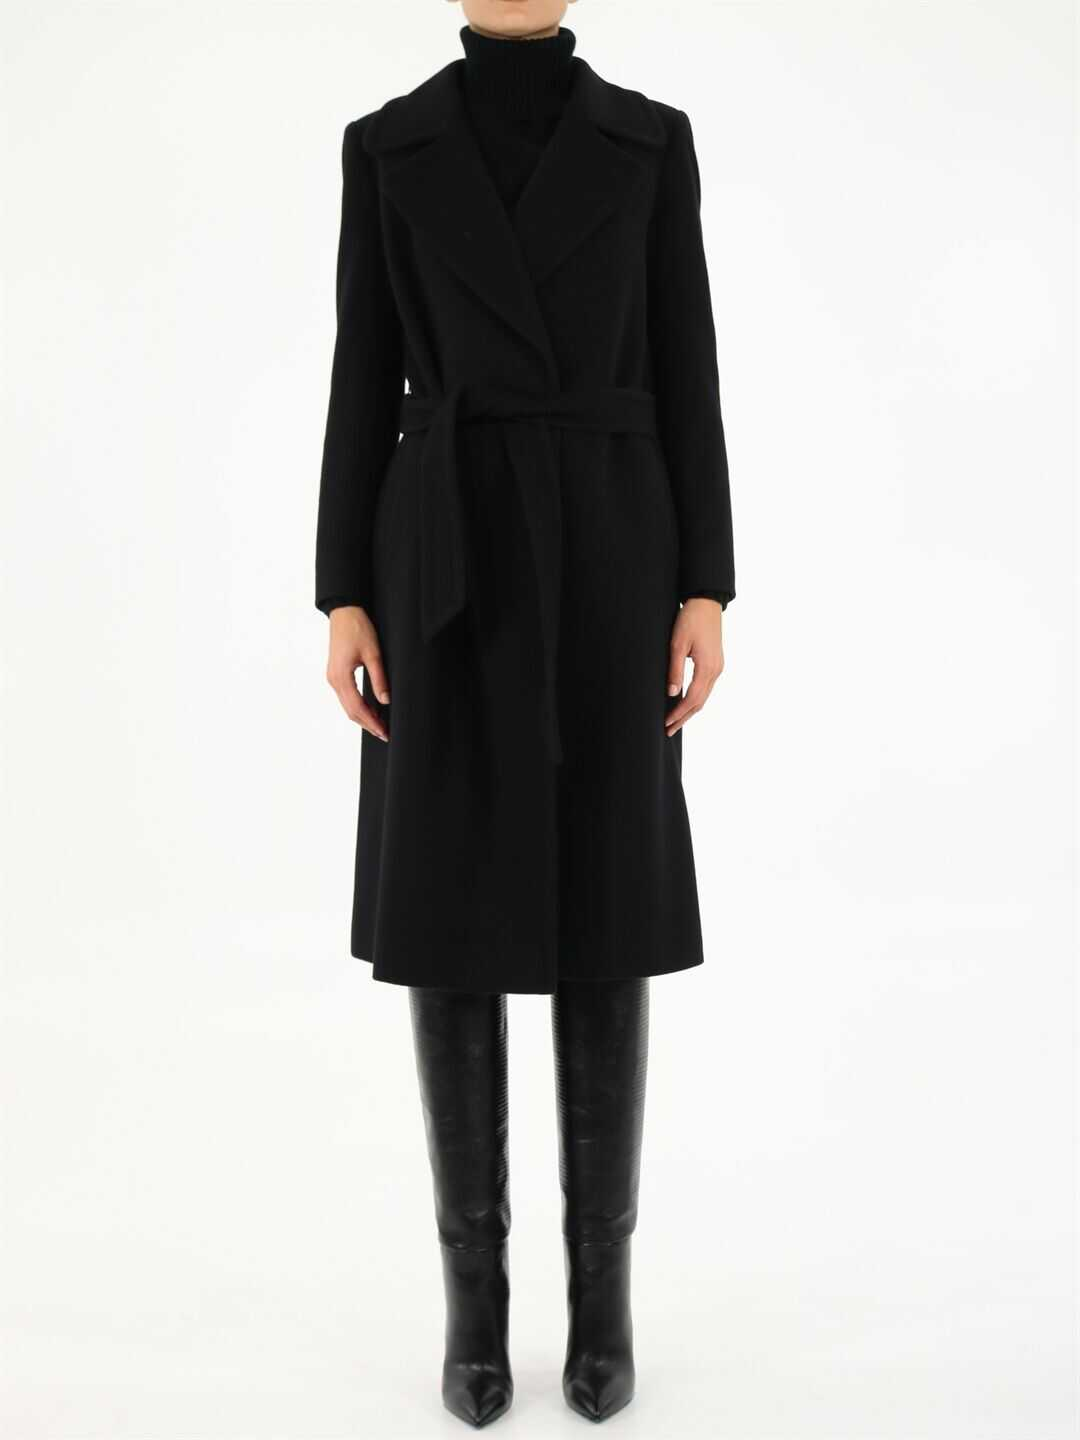 Tagliatore Molly Belted Coat In MOLLY 35001 Black image0